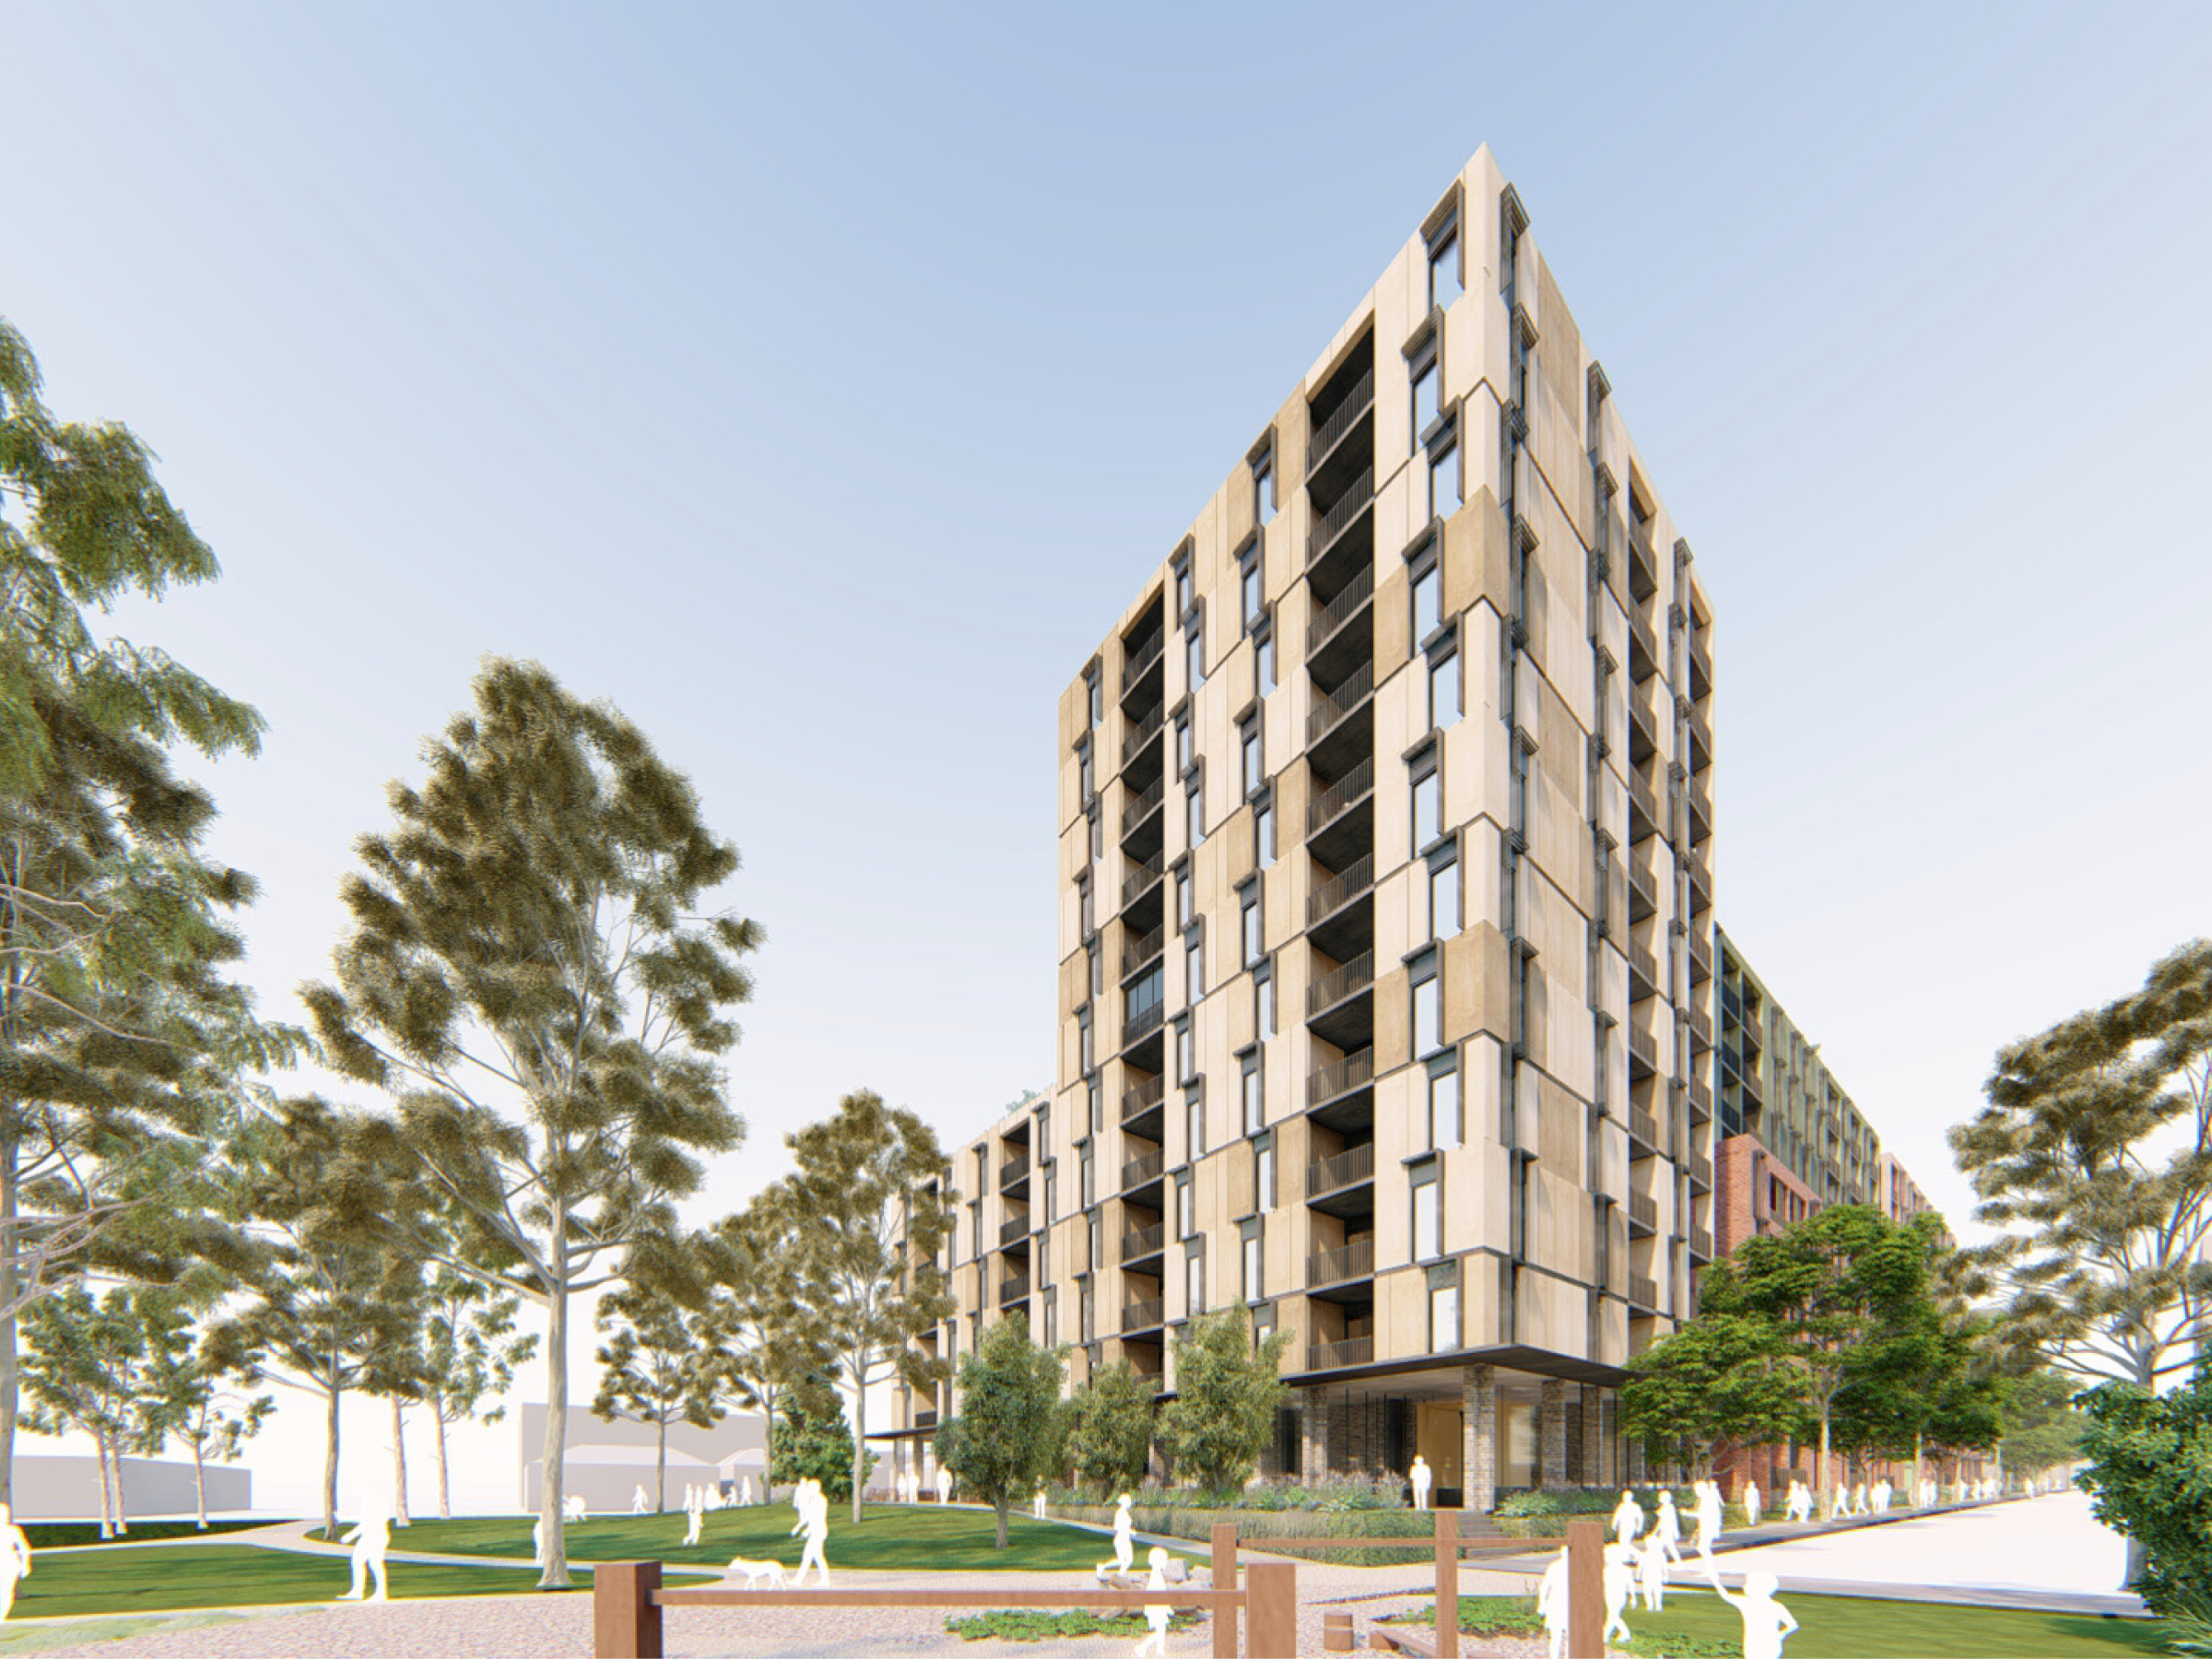 Artist impression looking at the new development from the park at Princes Street